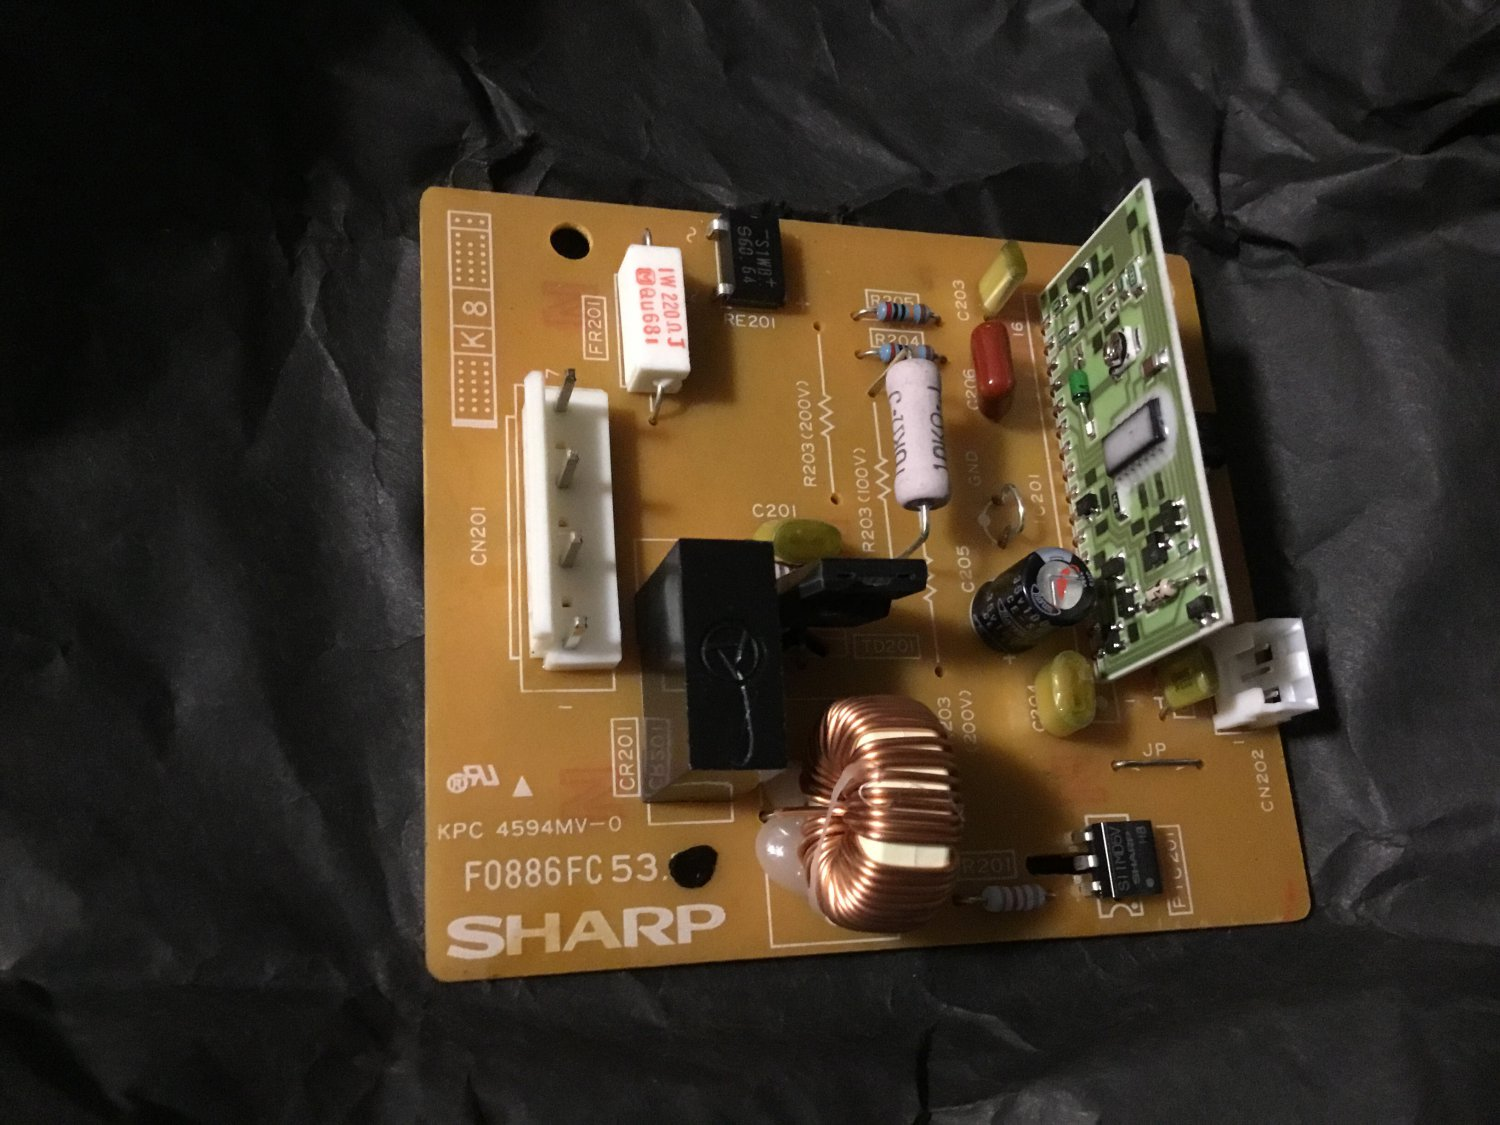 Sharp CPWBF0886FC53 pwb with IC for SF7370H